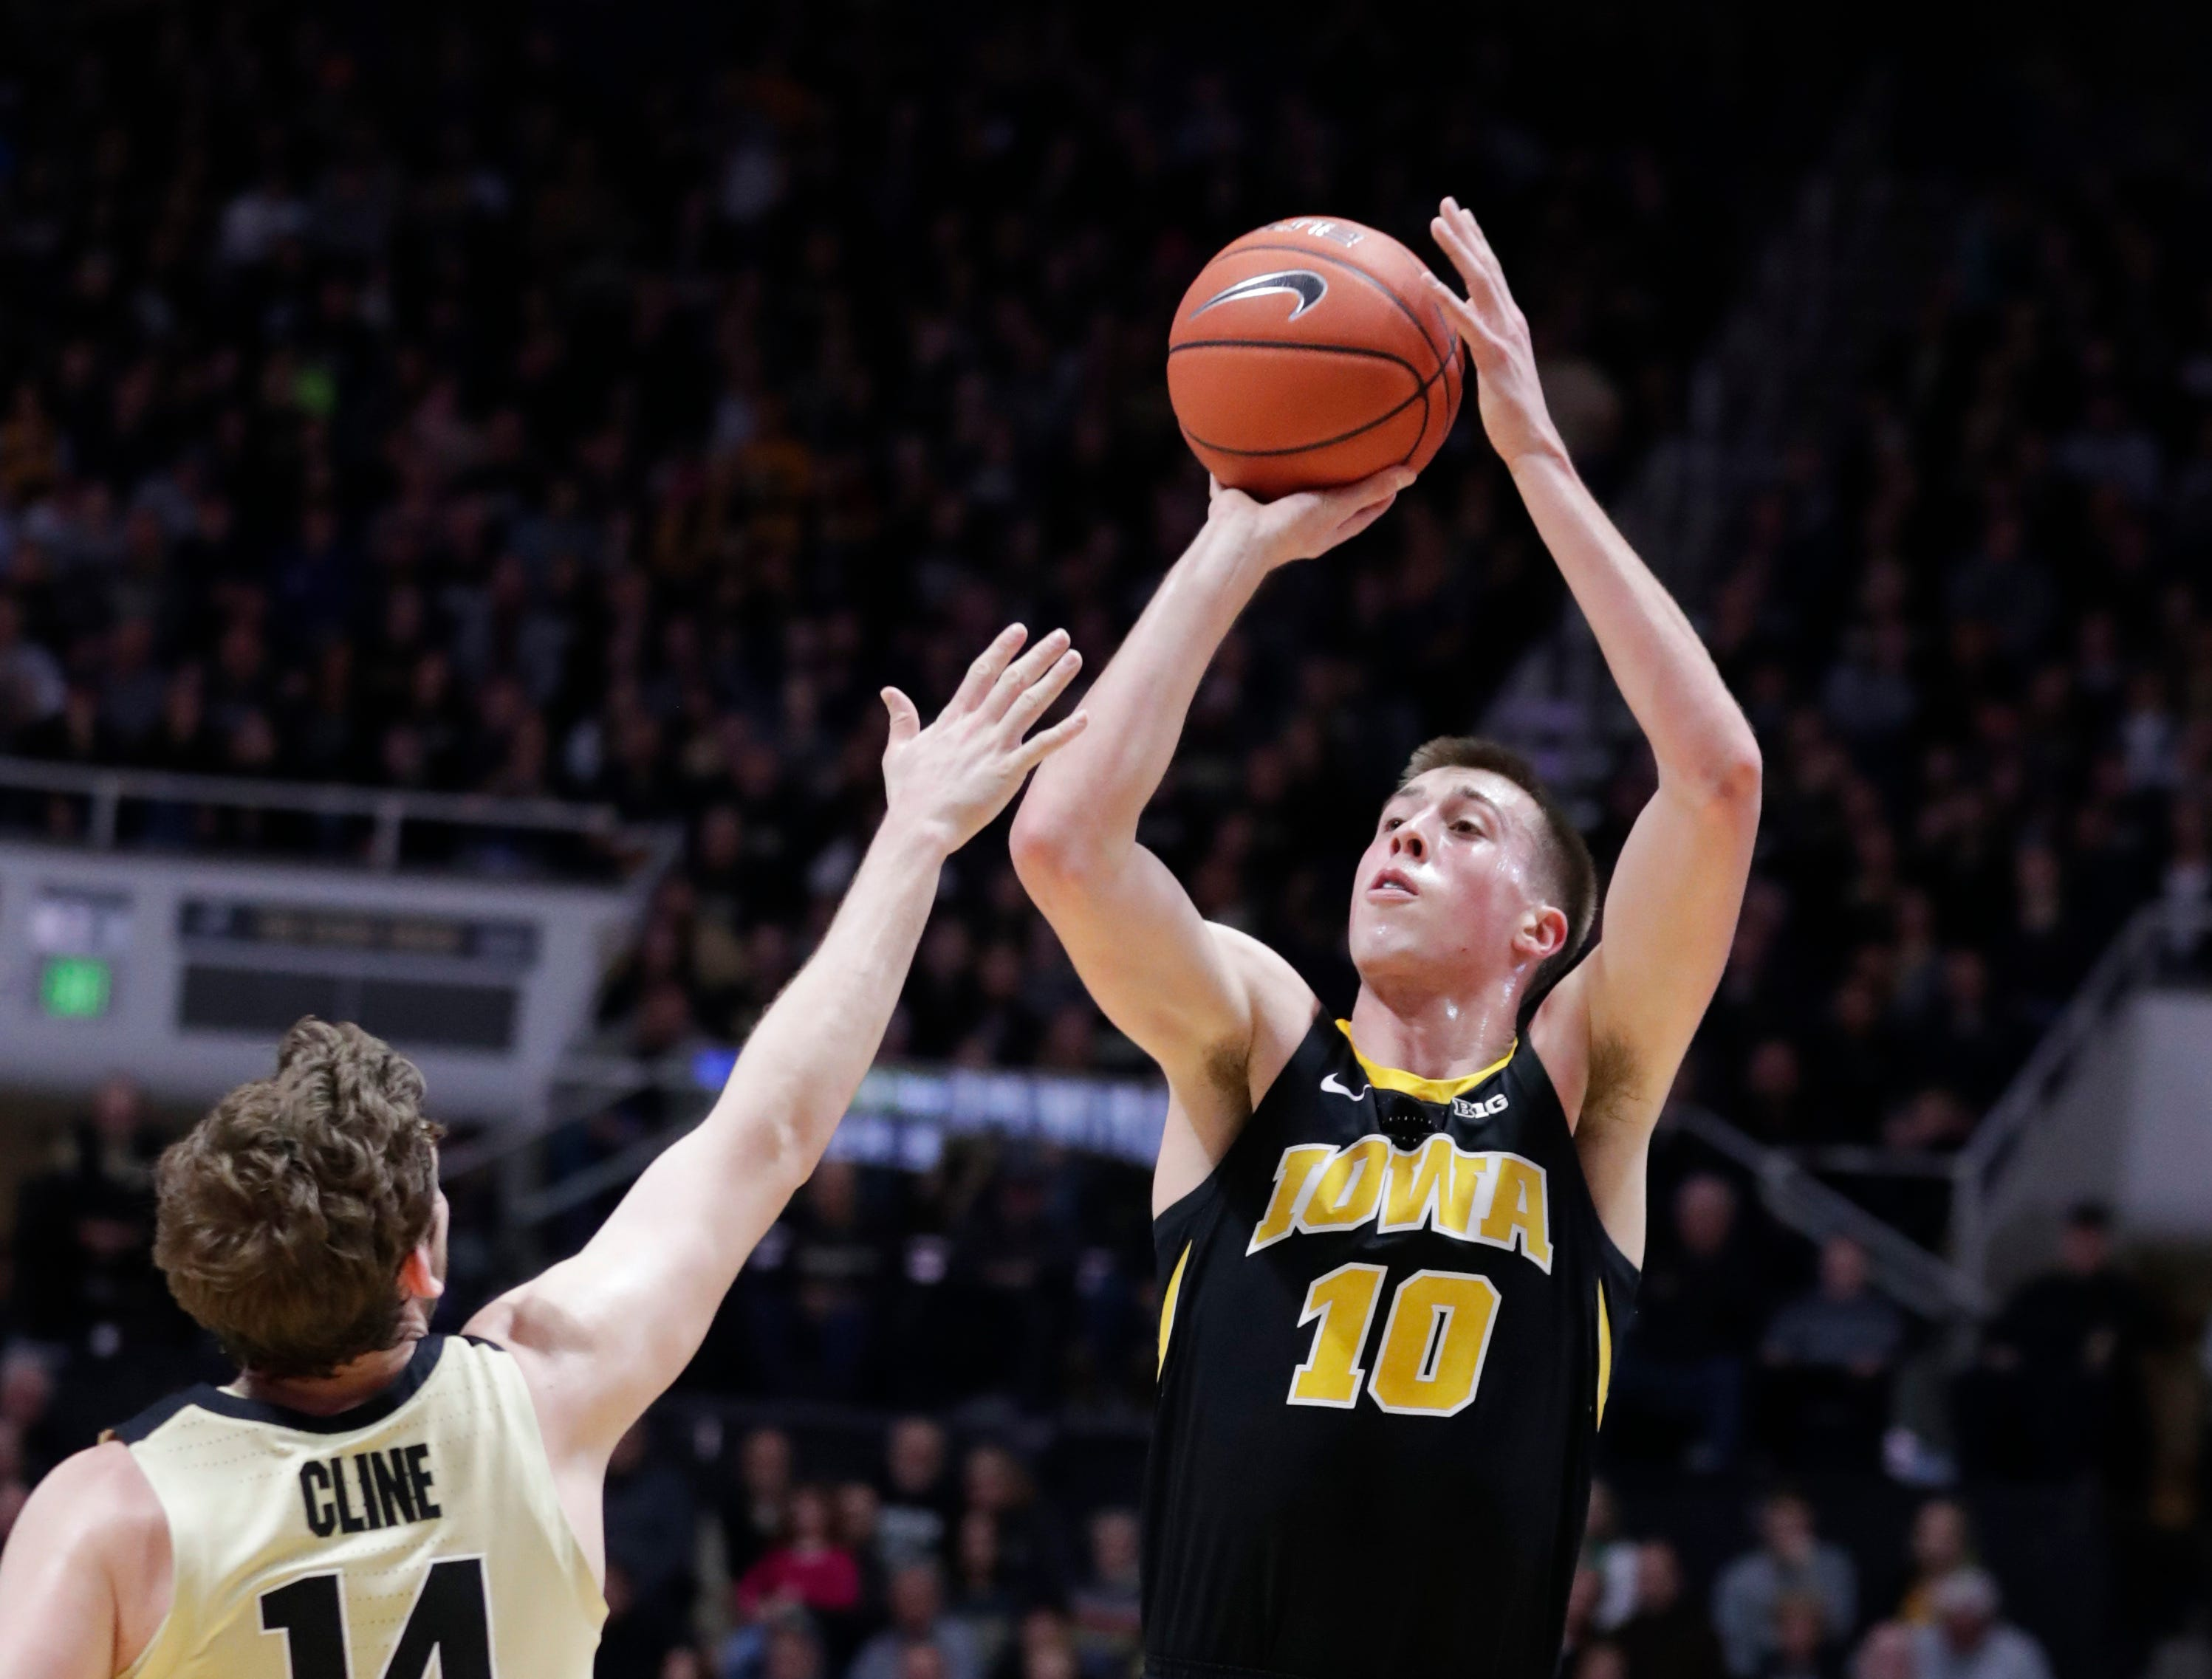 Iowa guard Joe Wieskamp (10) shoots over Purdue guard Ryan Cline (14) during the first half of an NCAA college basketball game in West Lafayette, Ind., Thursday, Jan. 3, 2019.